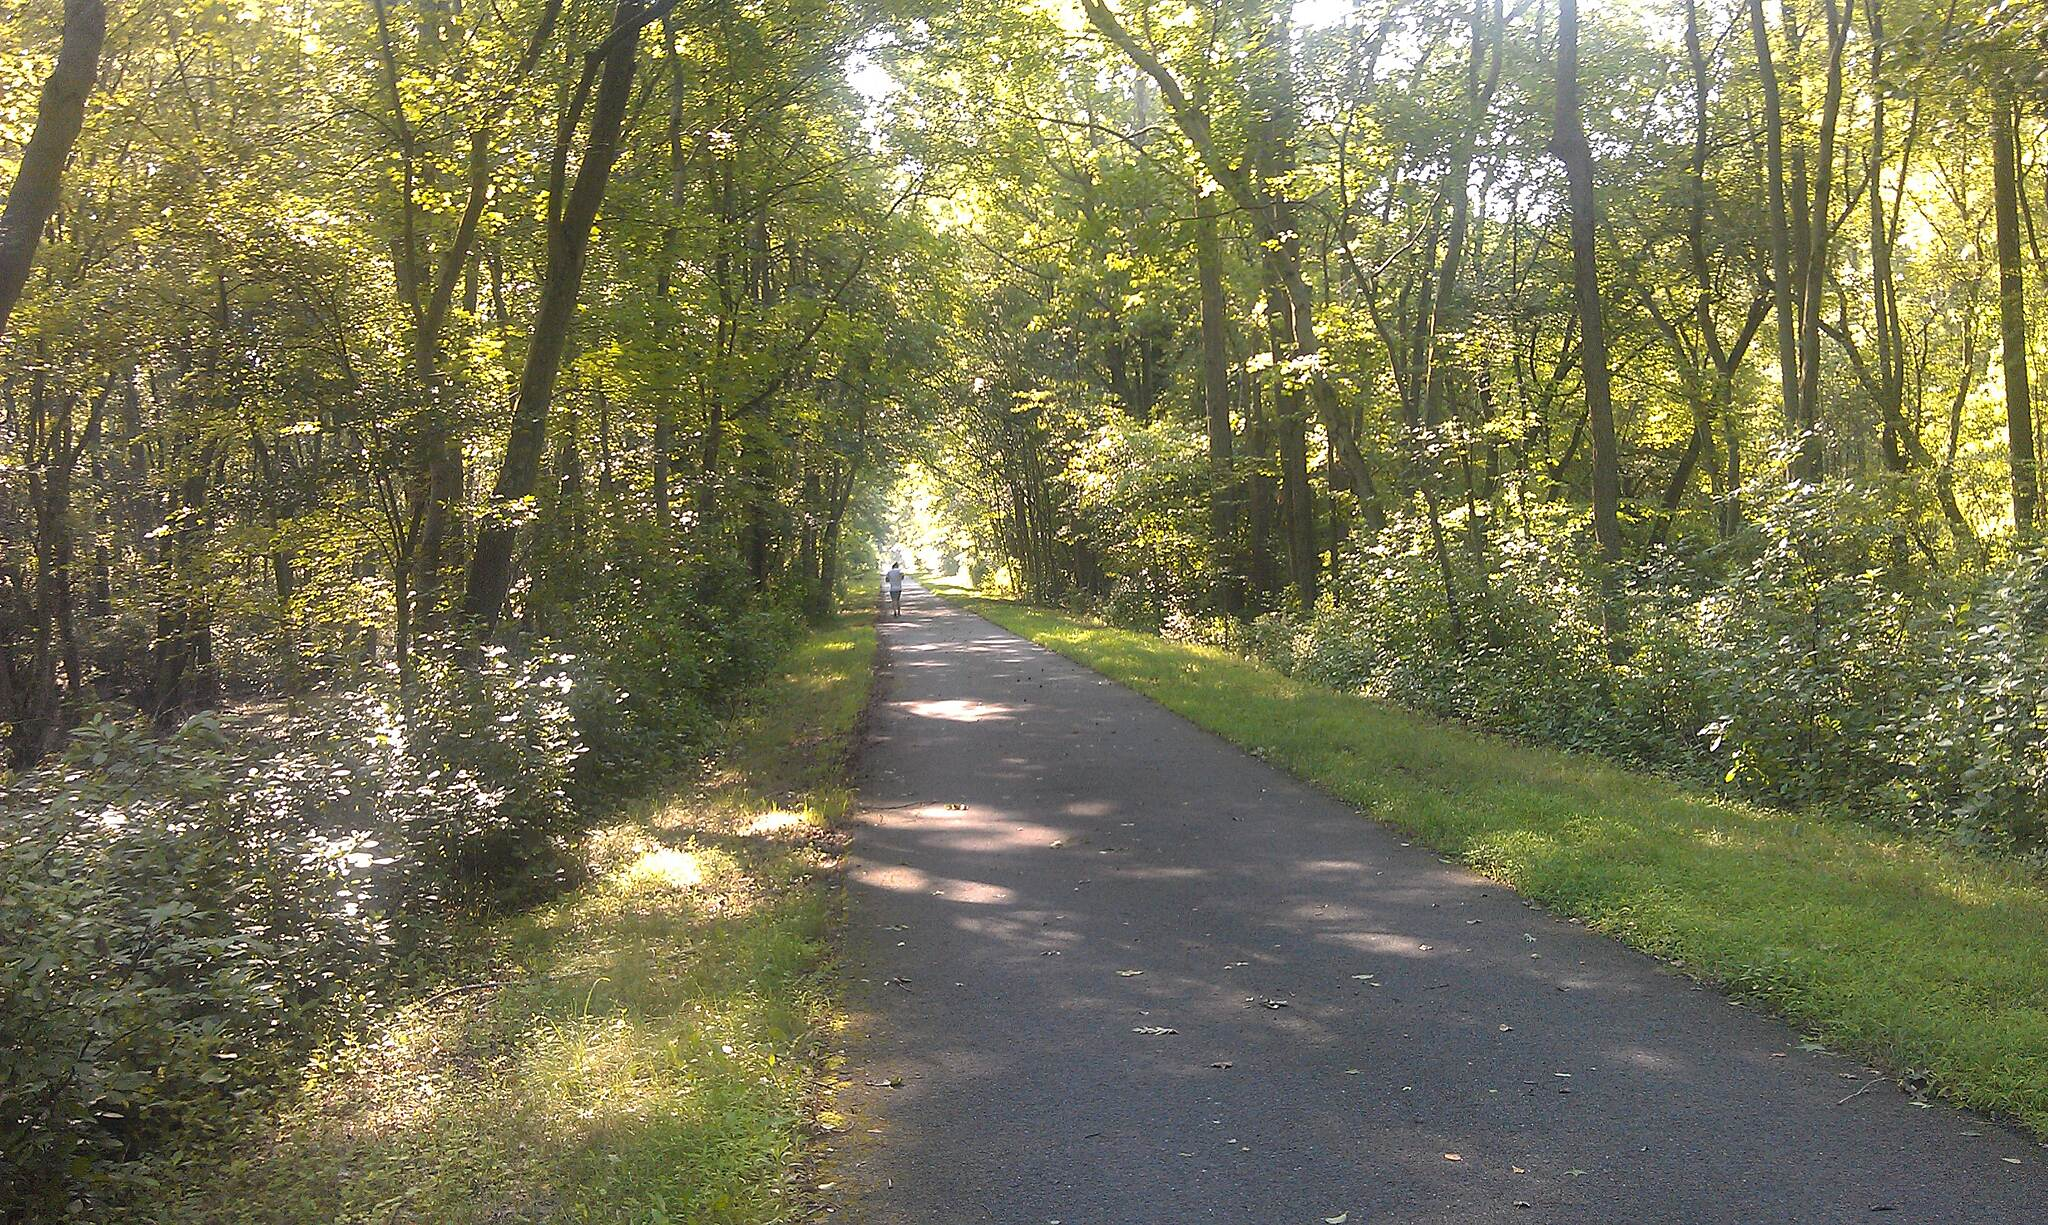 Monroe Township Bikeway On the trial Monroe Twp Bikeway Stop to enjoy what's around you.